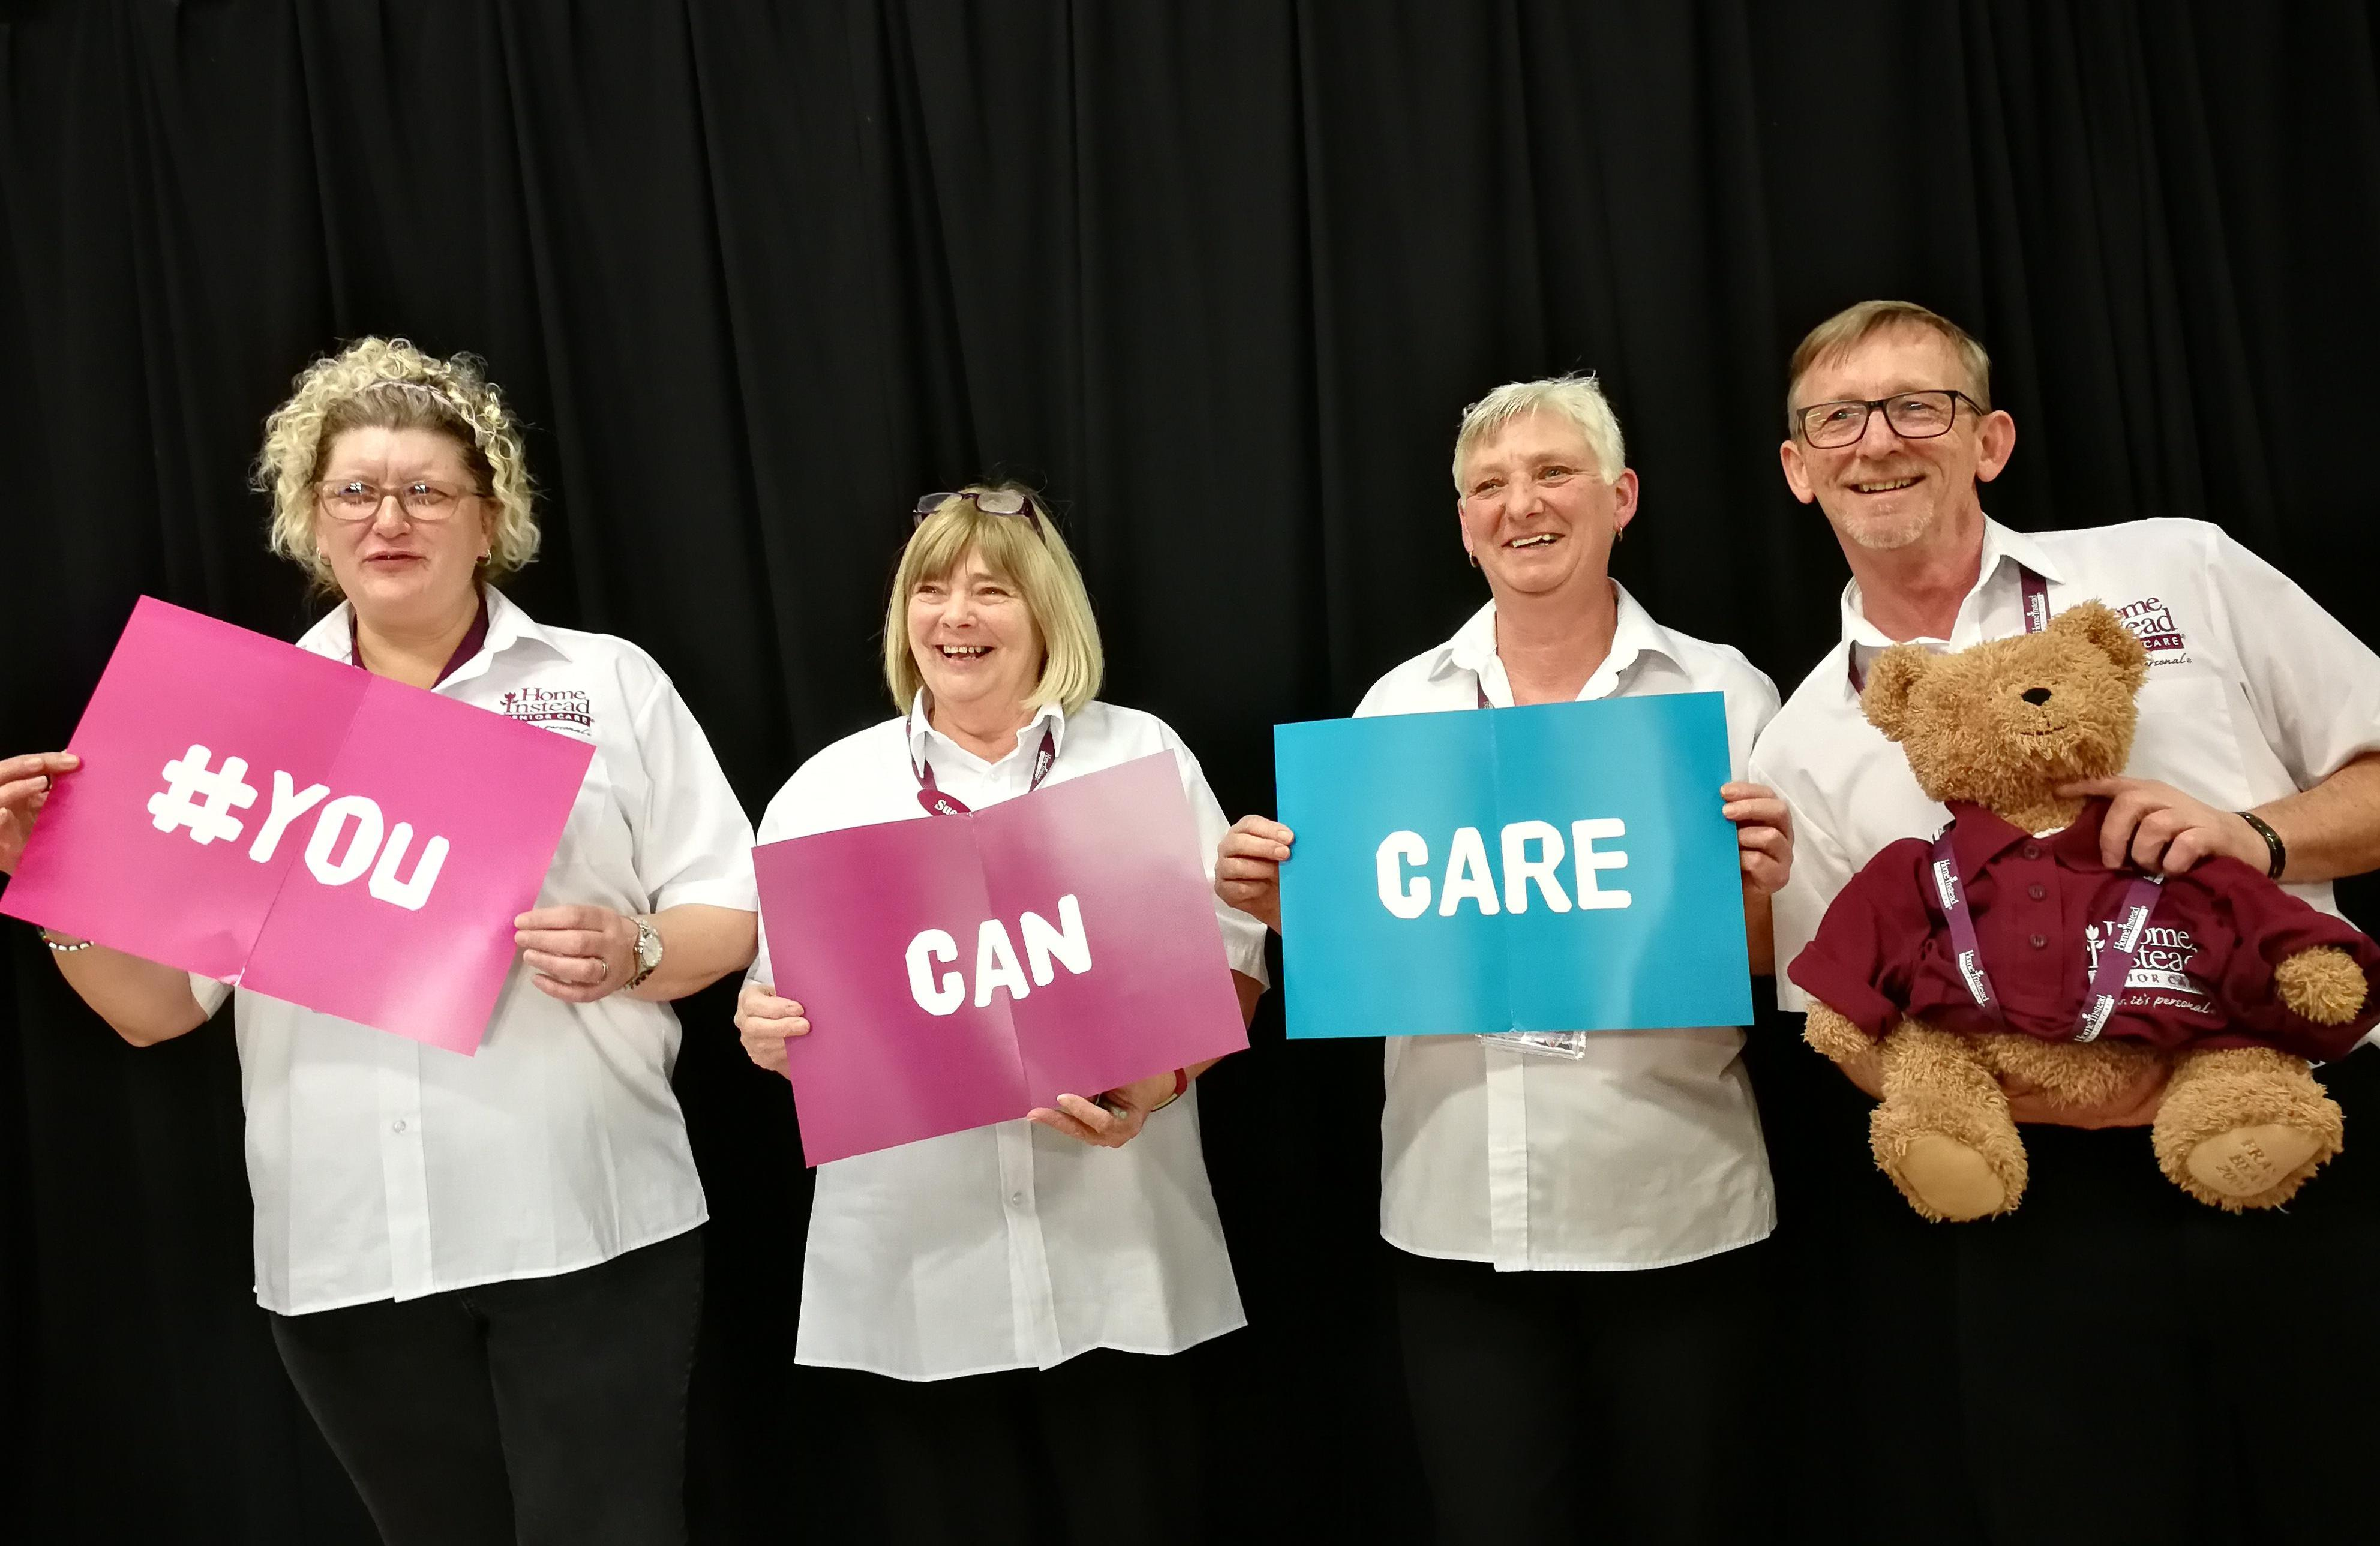 Join our team and discover that #YouCanCare with the best of us